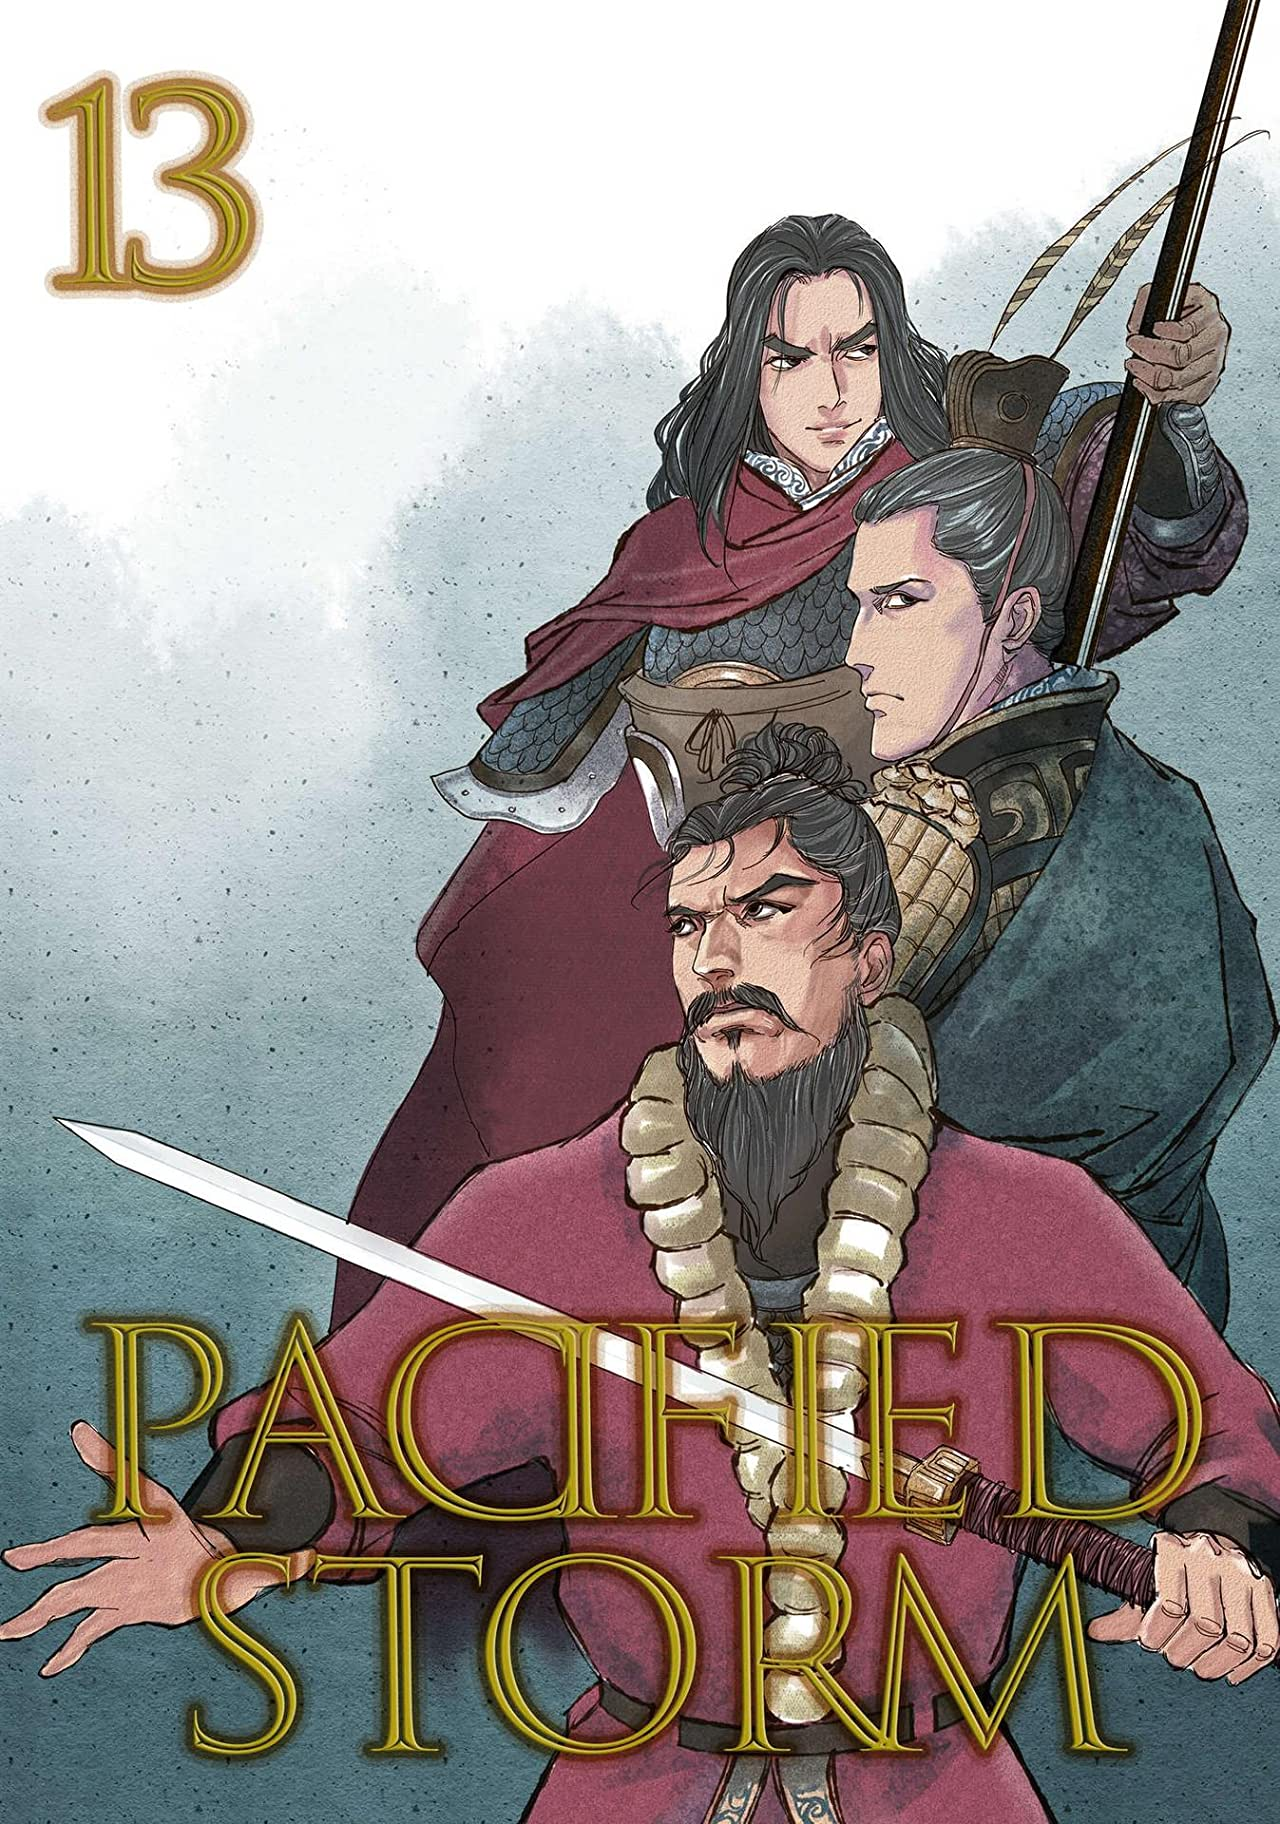 Pacified Storm #13